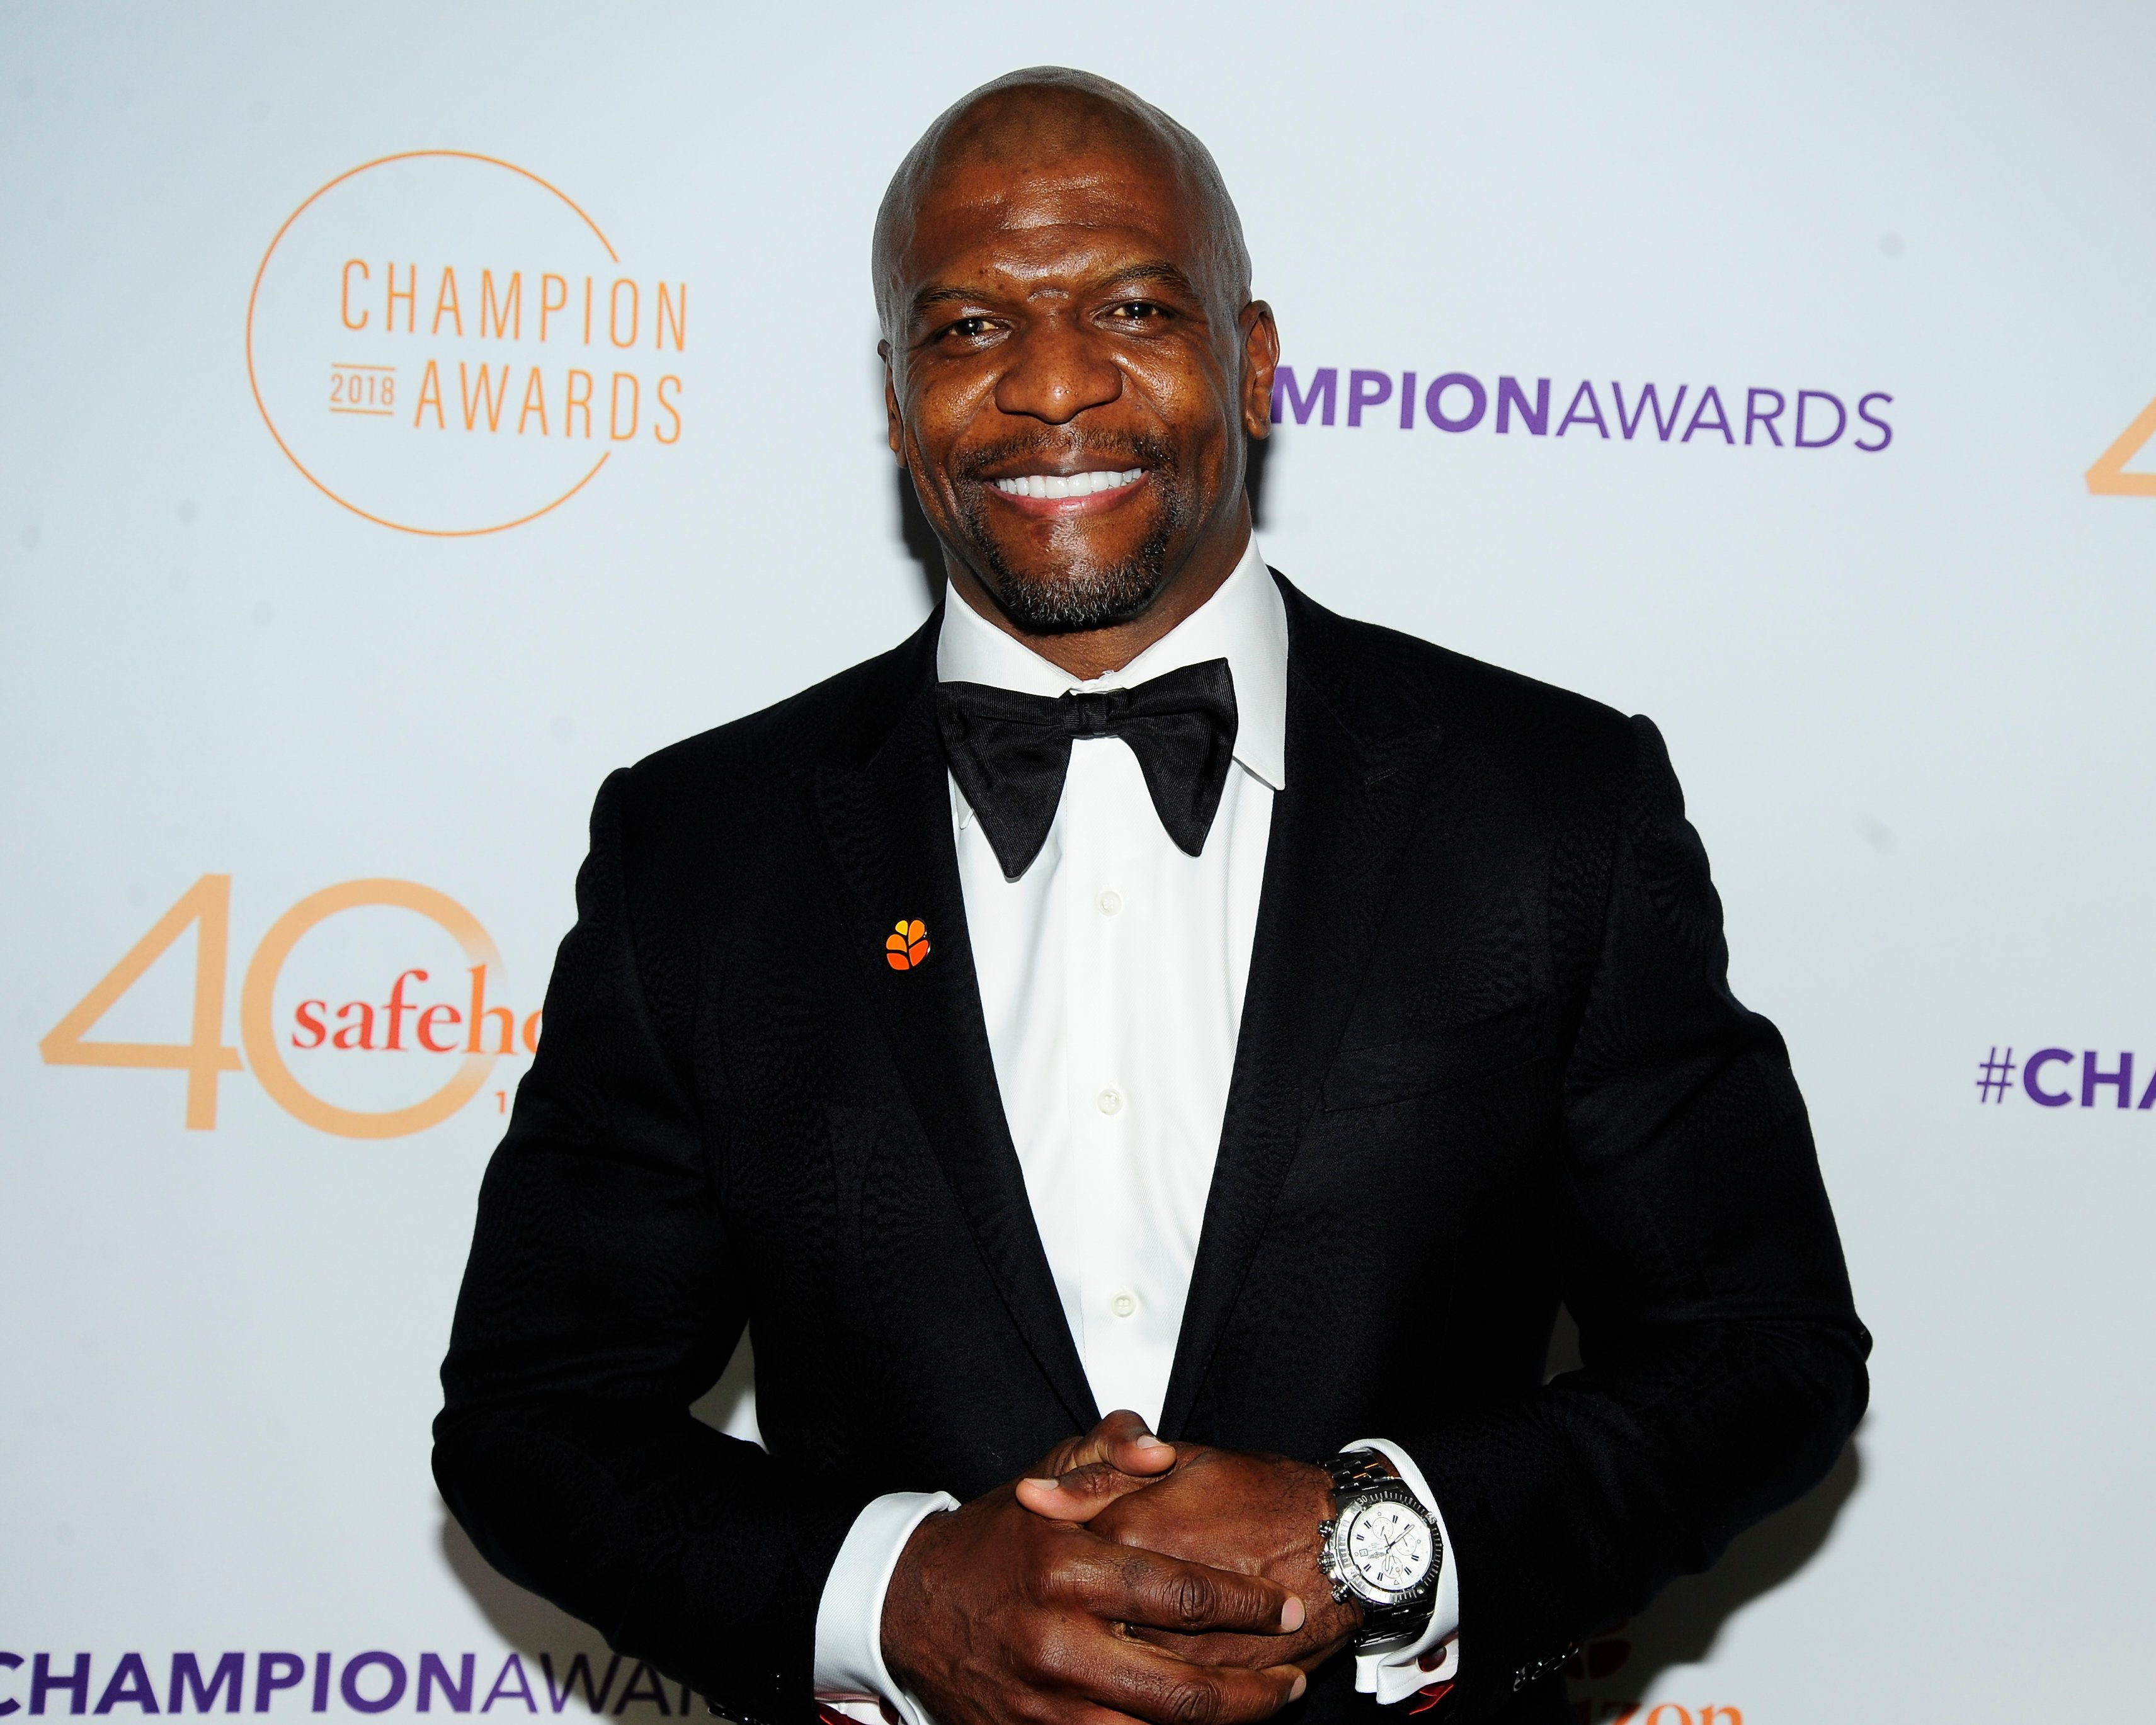 NEW YORK, NY - MAY 15: Terry Crews attends Safe Horizon's Champion Awards at The Ziegfeld Ballroom on May 15, 2018 in New York City.  (Photo by Paul Bruinooge/Patrick McMullan via Getty Images)